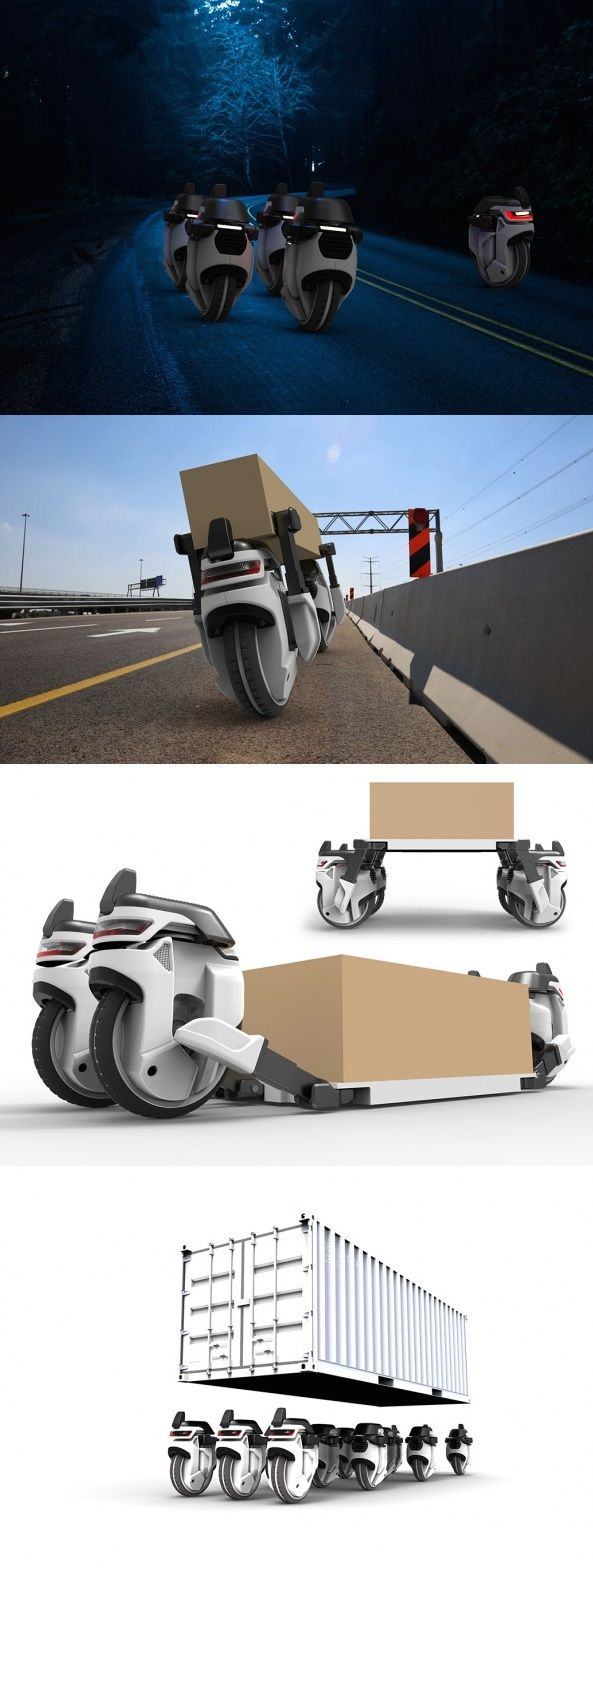 The Transwheel concept reimagines package distribution as a round-the-clock auto...